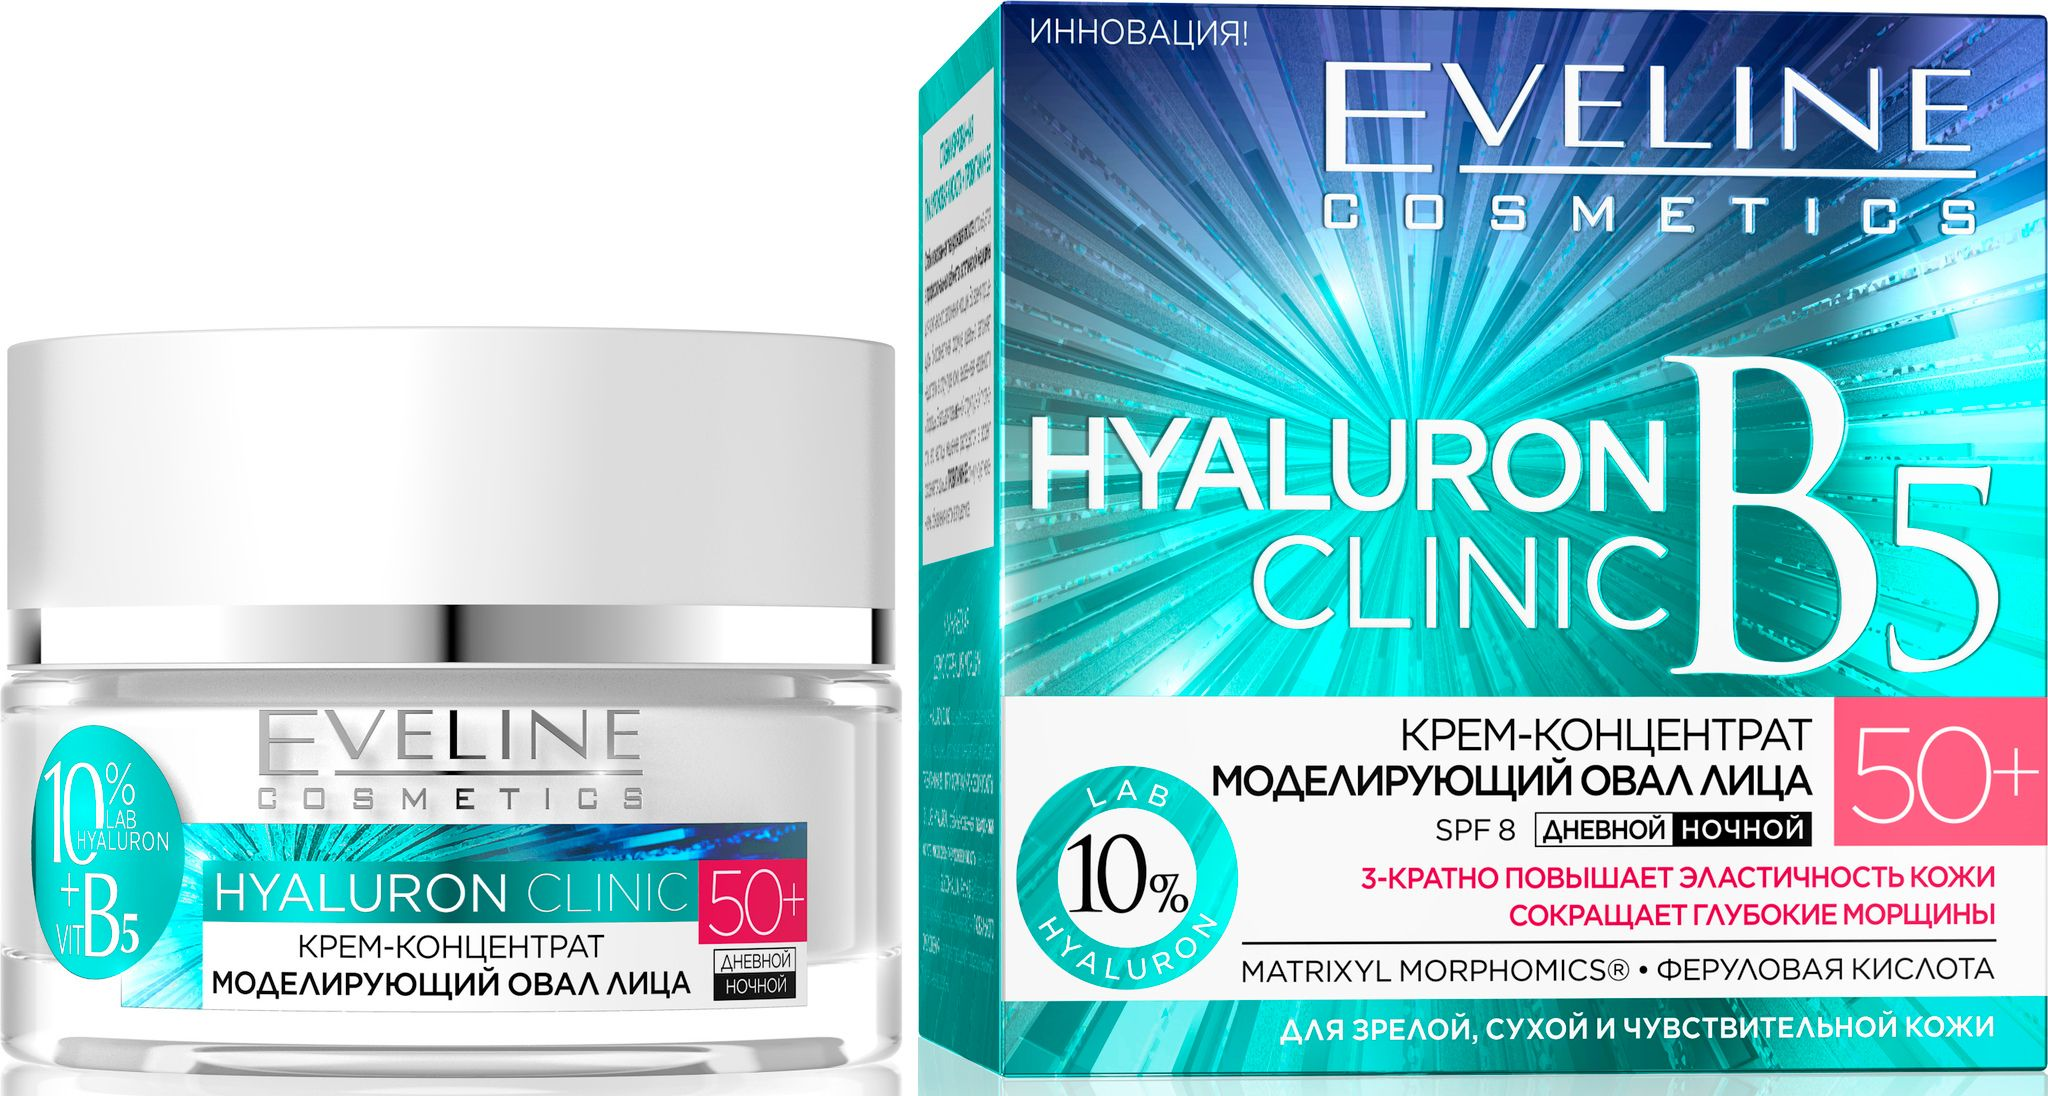 Cream concentrate simulating the shape of the face 50+ hyaluron clinic series b5, Nivea, 50 ml